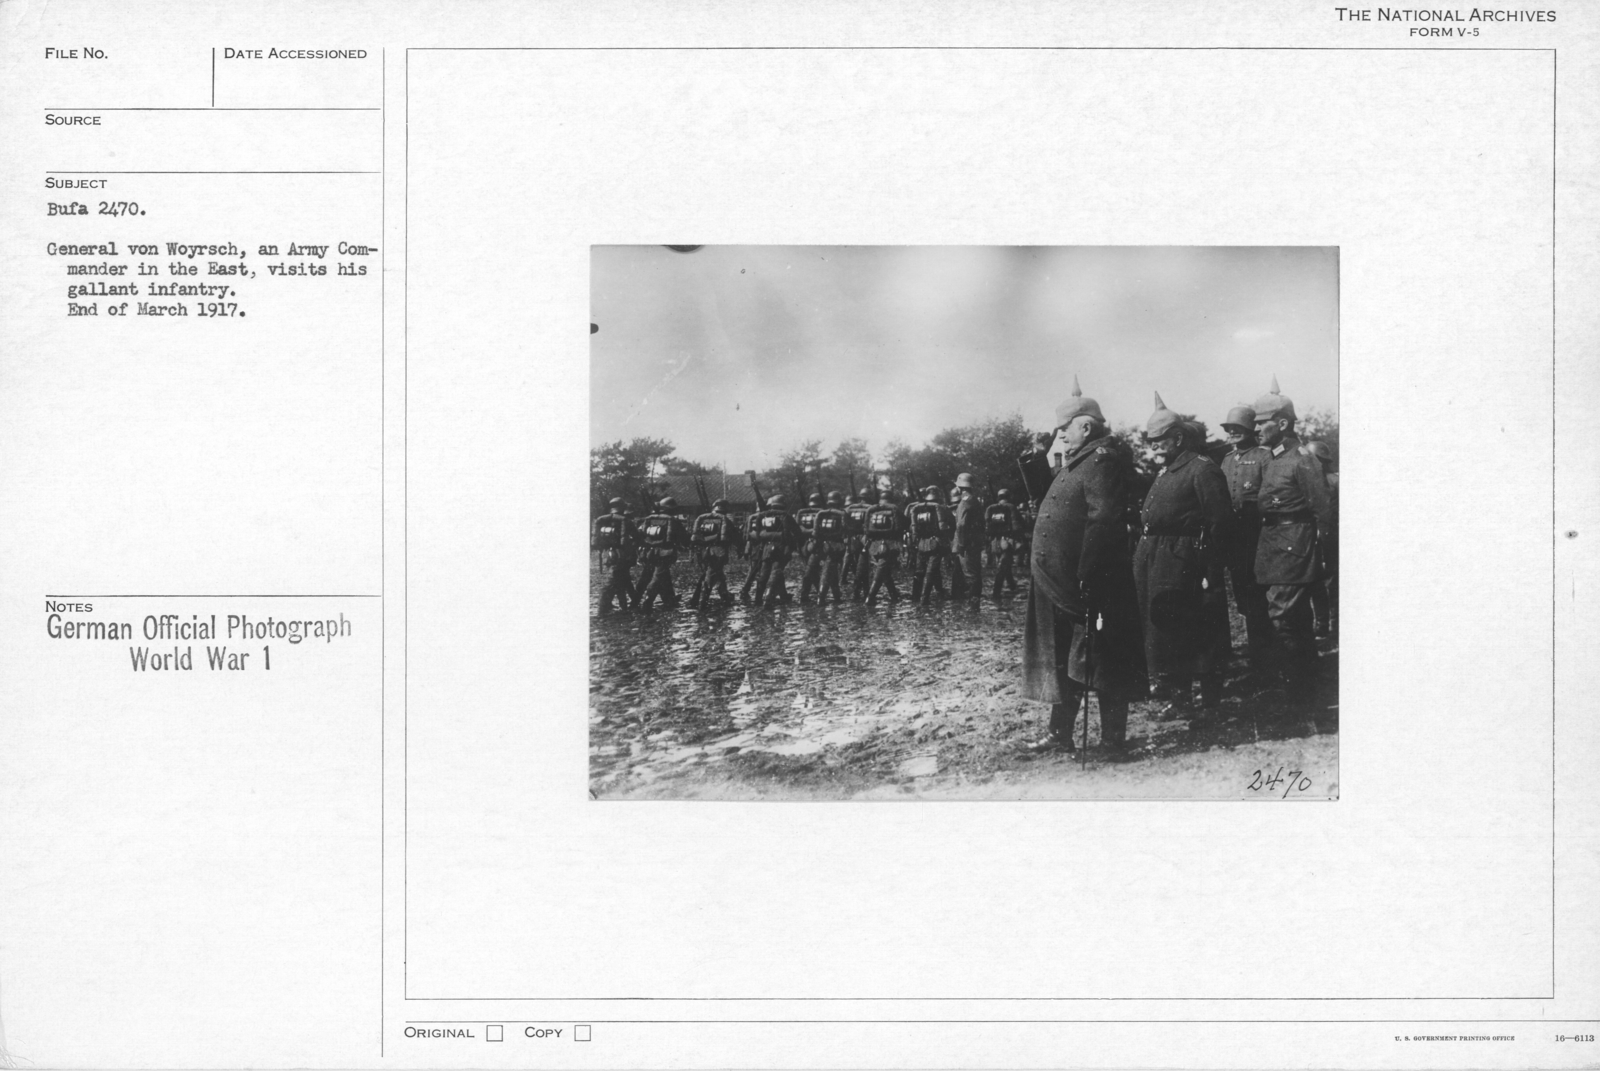 General Von Woyrsch, an Army Comander in the East, visits hiss gallant infantry. End of March 1917